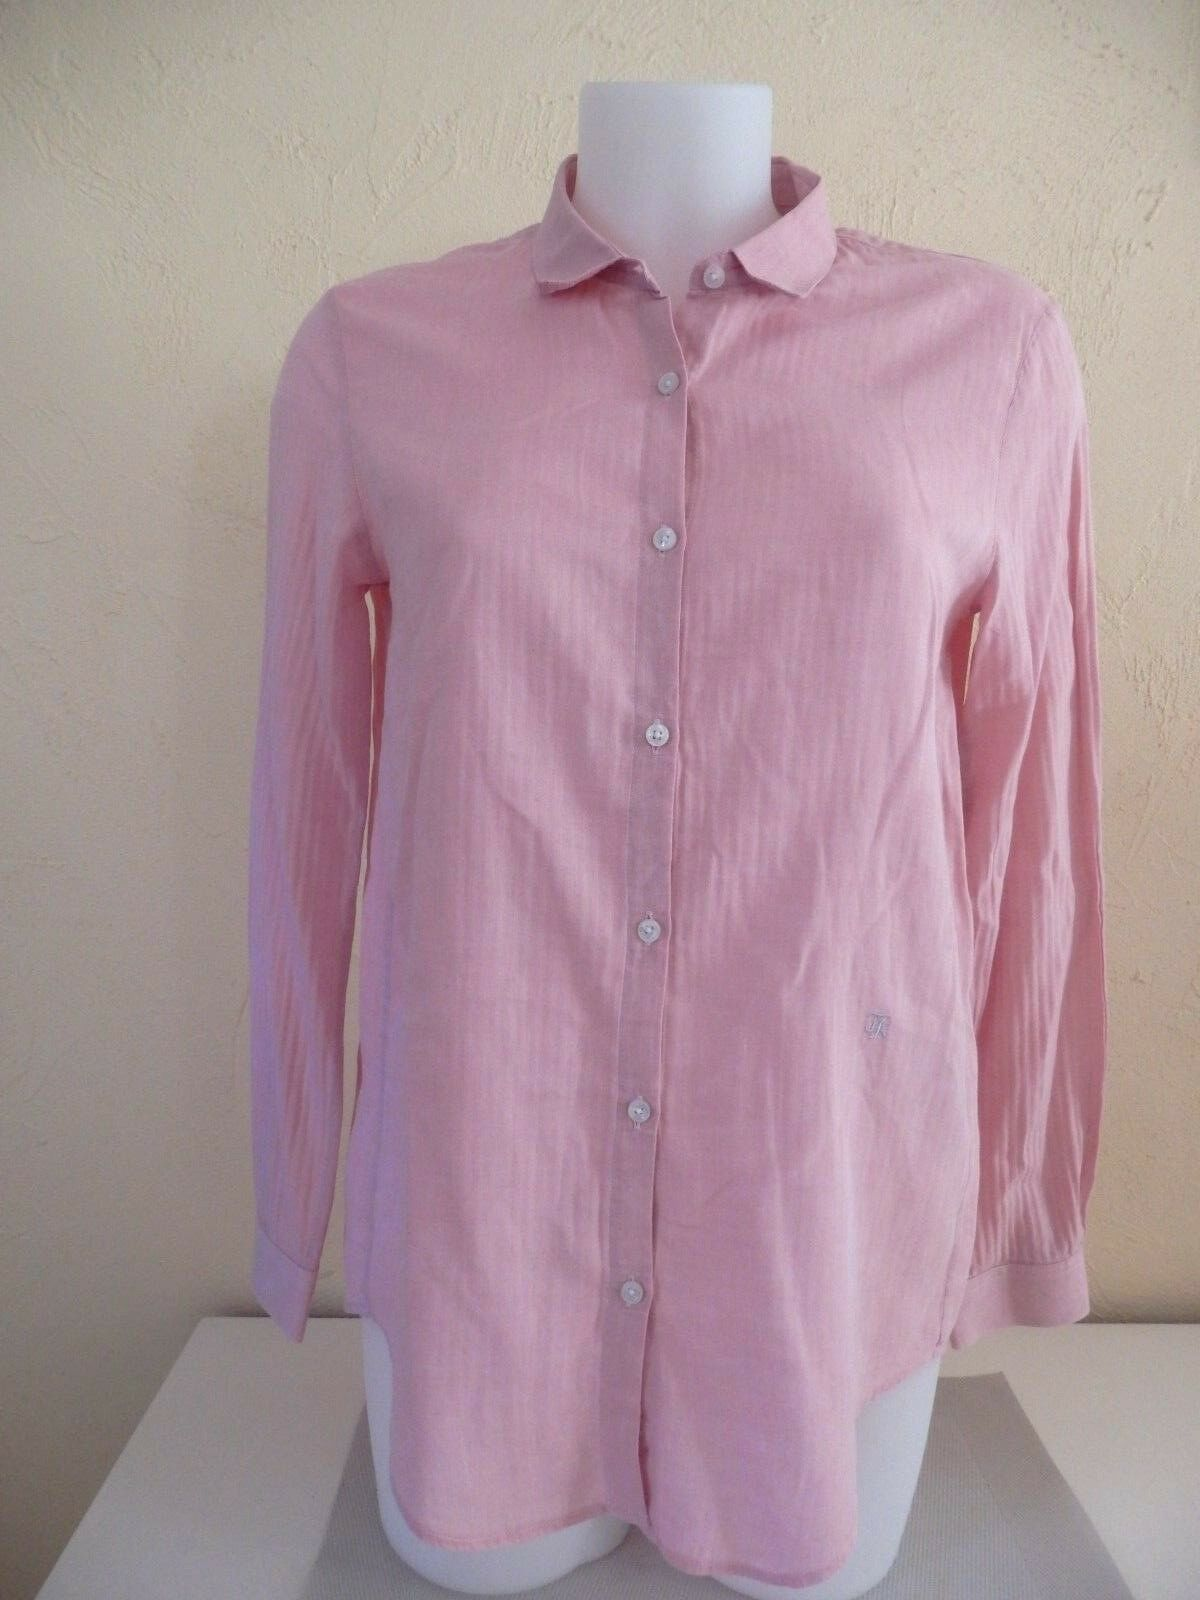 THE KOOPLES - shirt chevron - Size S either 36fr - PINK - 100% cotton